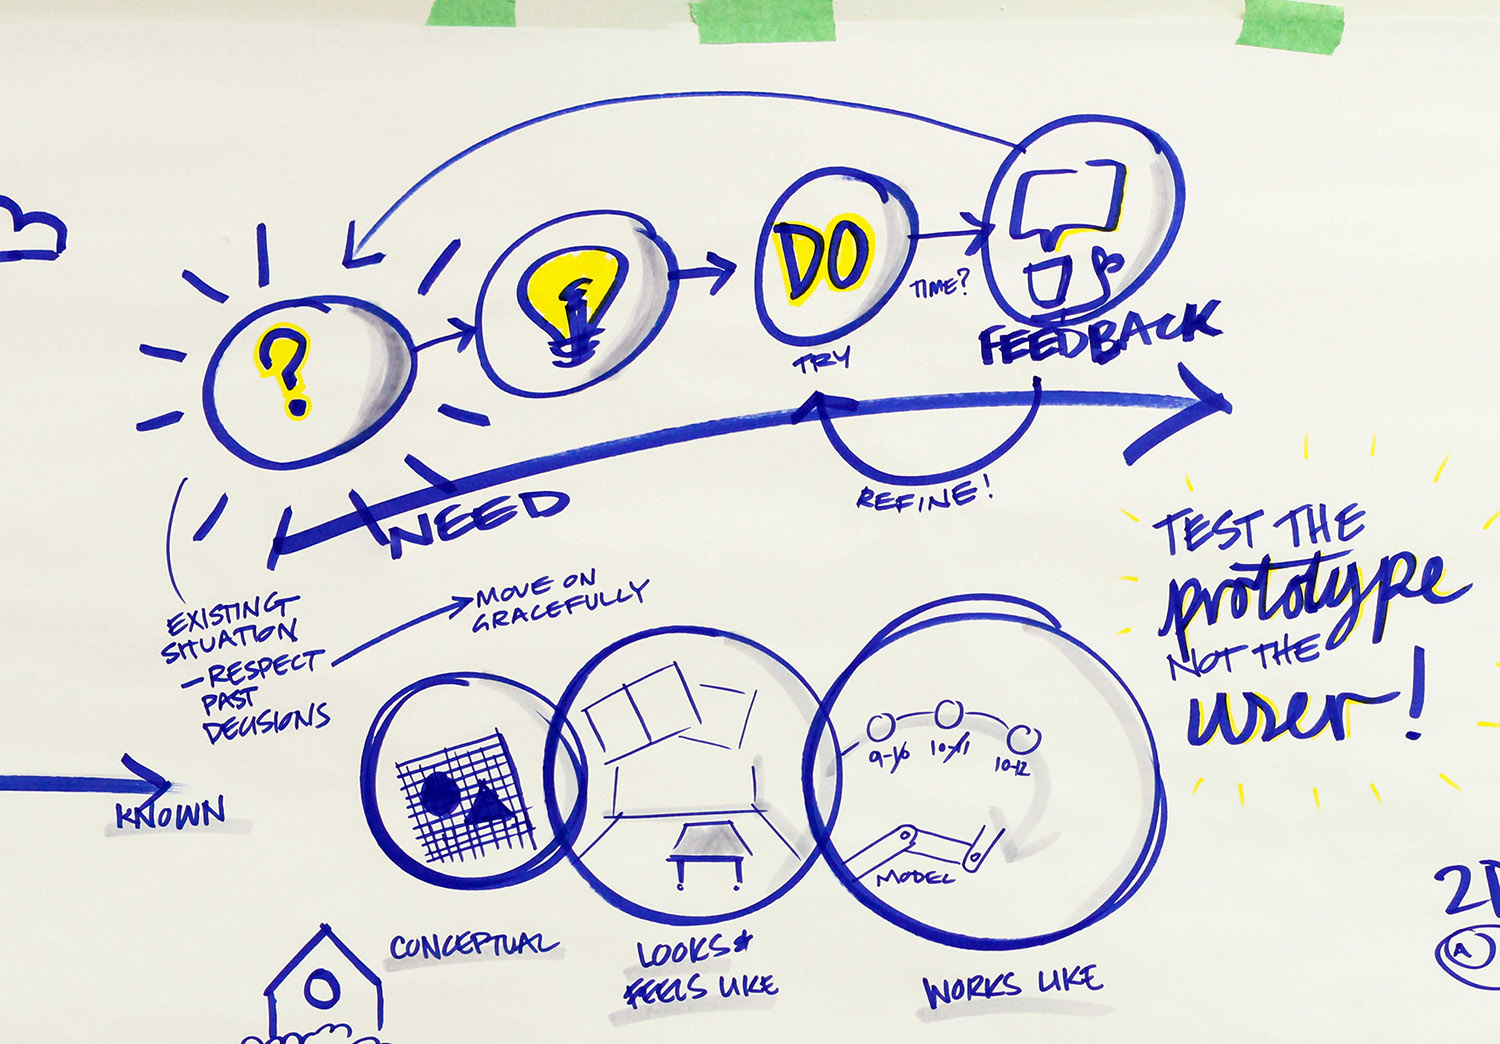 Graphic recording of the prototyping process by Paul Messer.